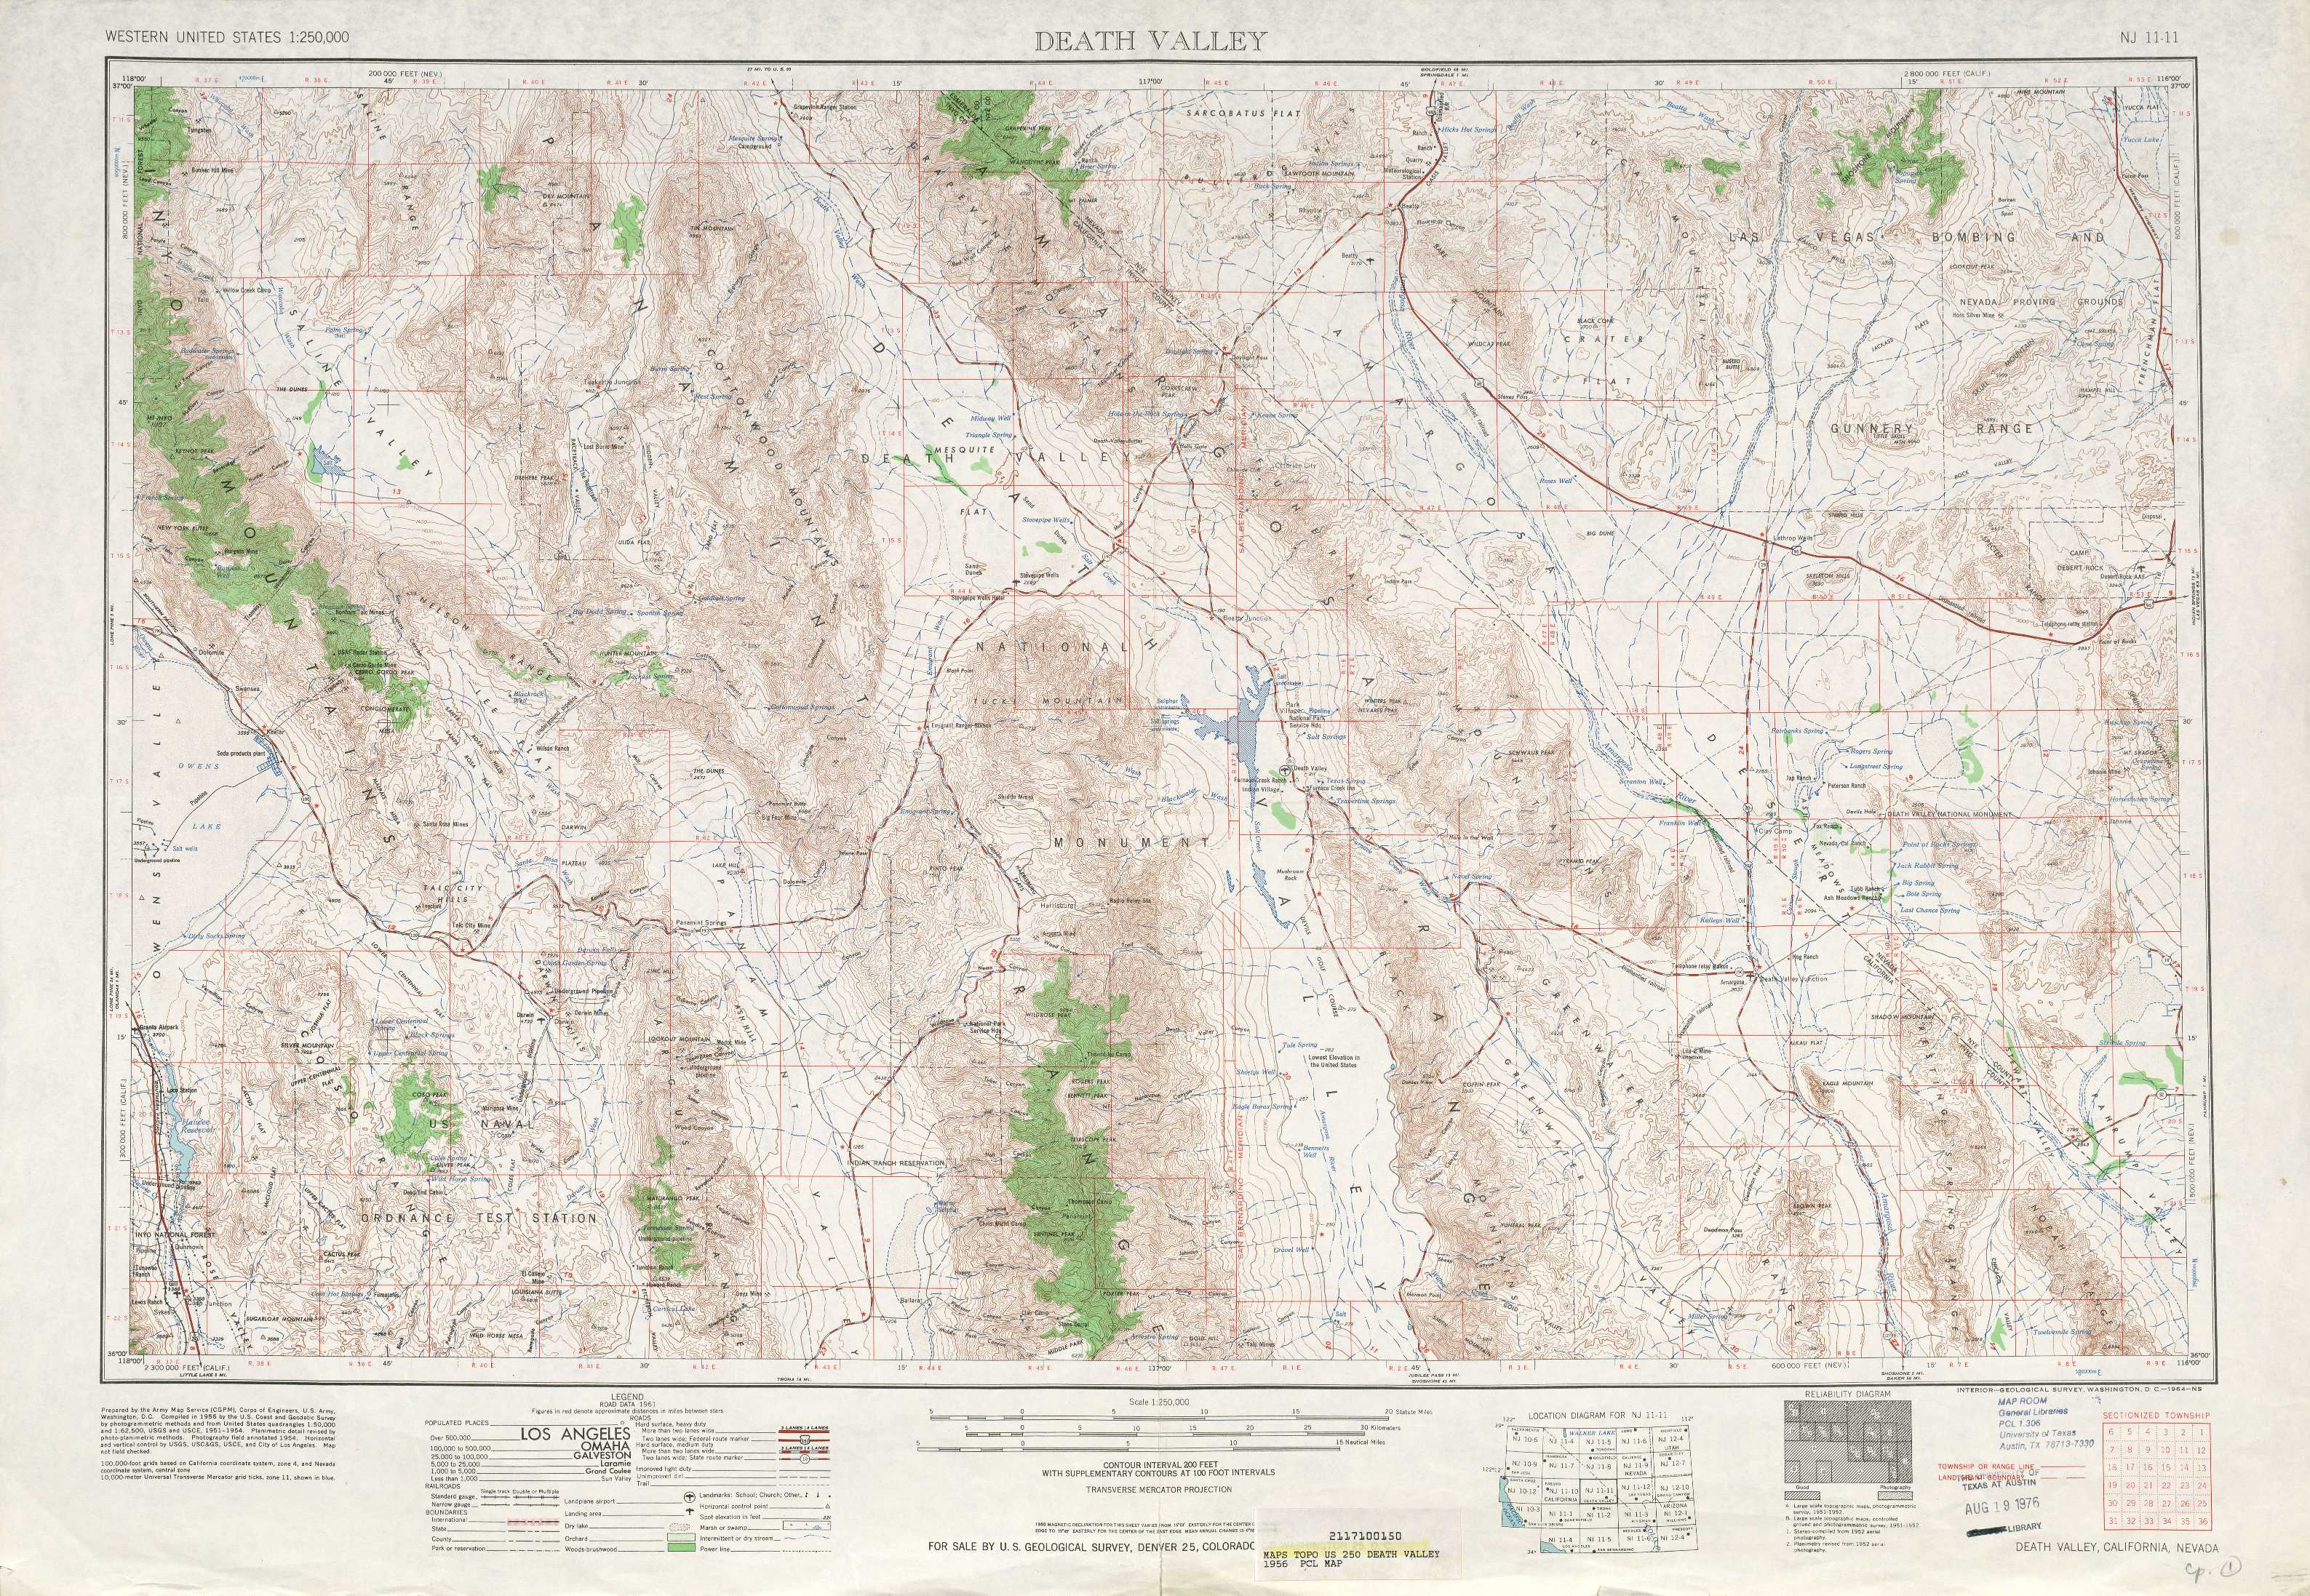 oregon topographic map with 36116a1 on Map Washington State as well Carte De L Espagne moreover Mesh info together with Garmin mapsource De en besides Rhode Island.